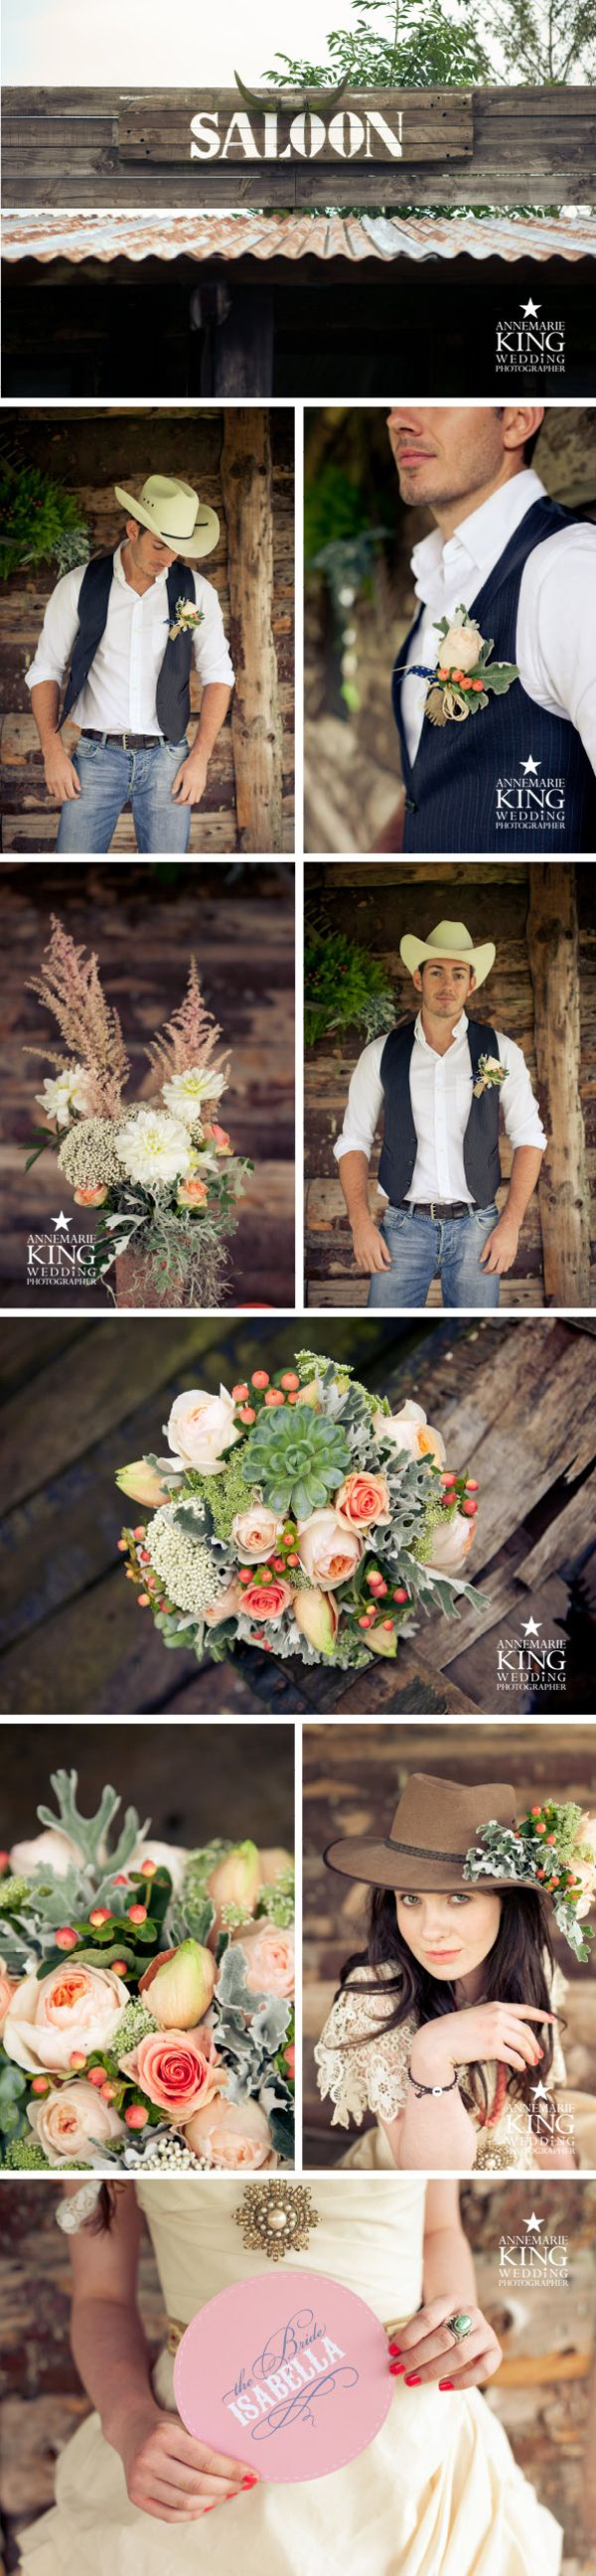 Country & Western wedding by Annemarie King : York Wedding Photographer